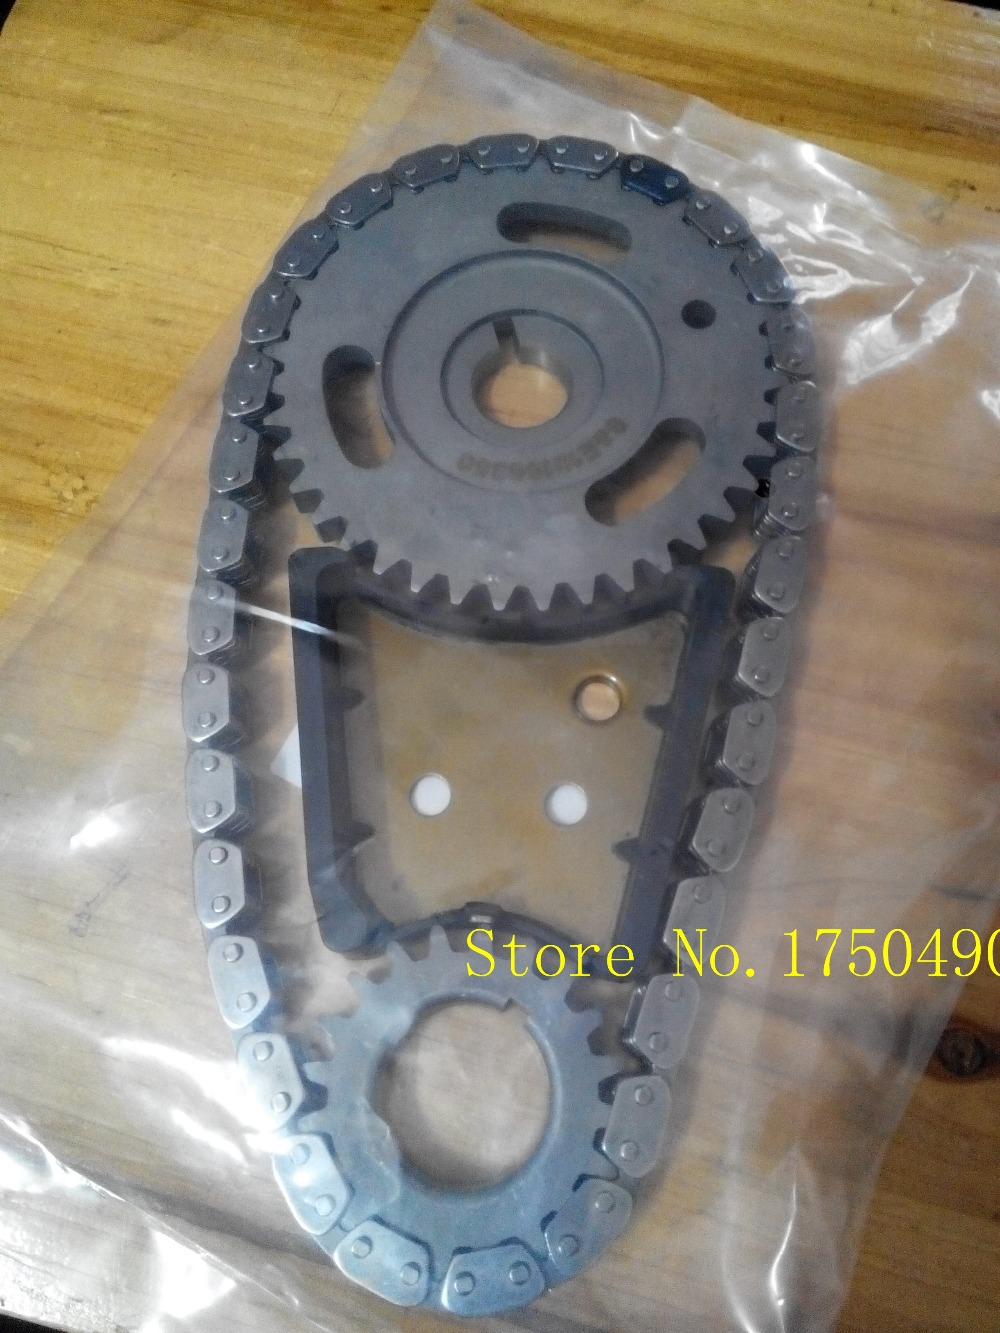 Brand New Engine Timing Chain Set / Kit For Buick and Chevrolet OEM# 10166352 C-3036 73116 For Wholesale & Retail(China (Mainland))